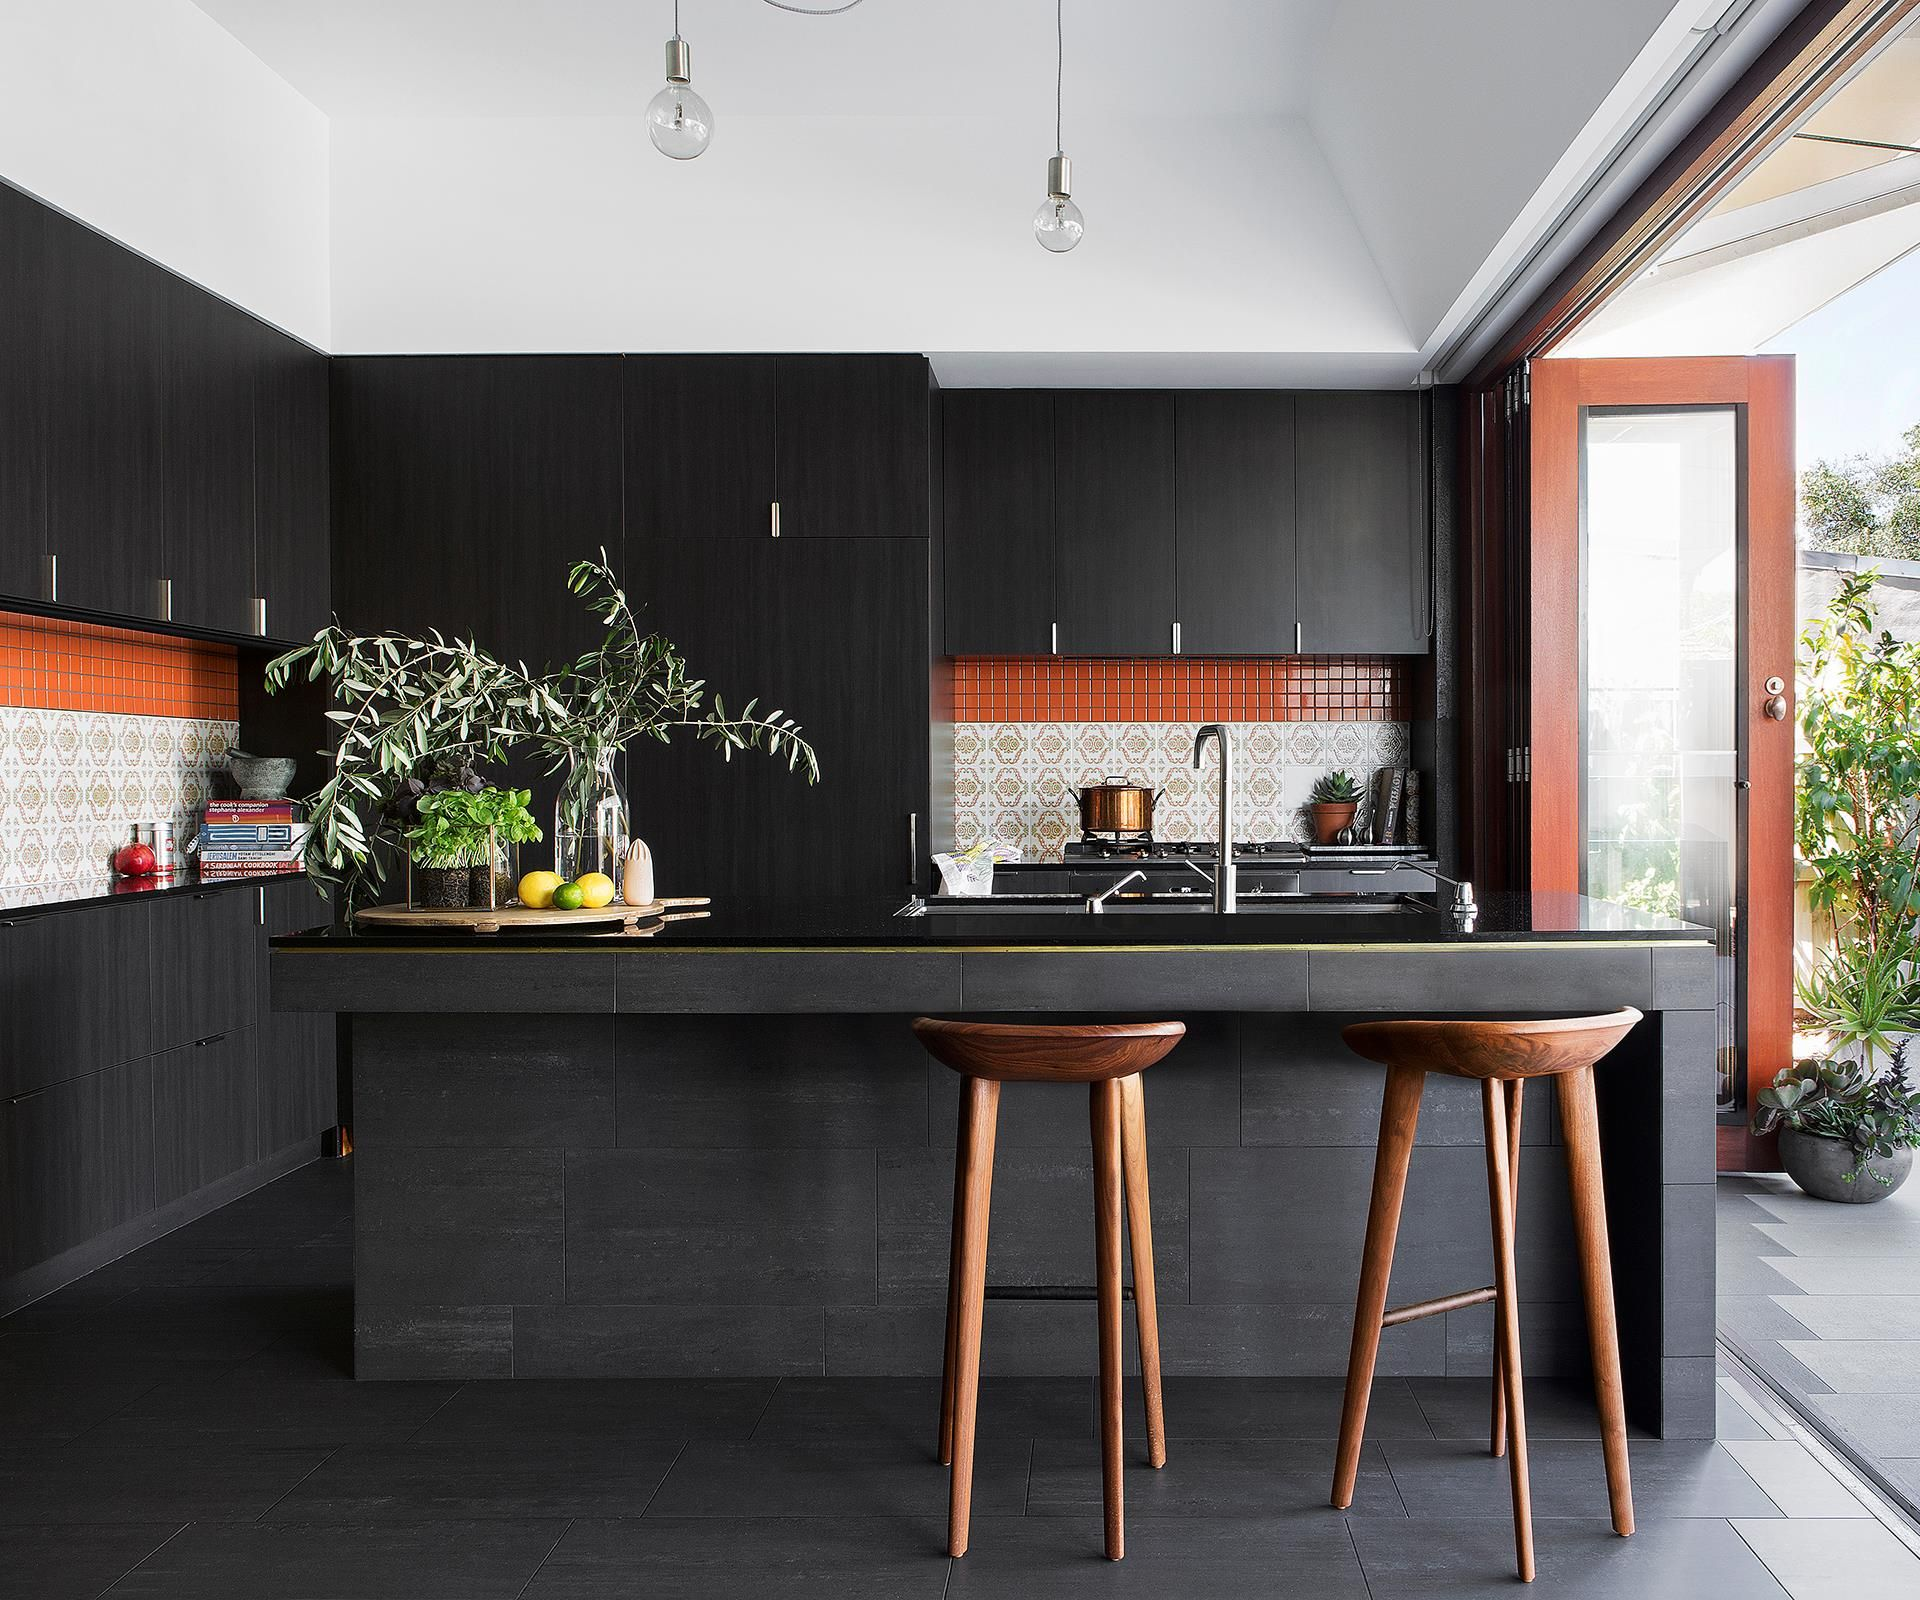 Retro Refit A 70s Inspired Kitchen Matte Black Kitchen Kitchen Interior Interior Design Kitchen